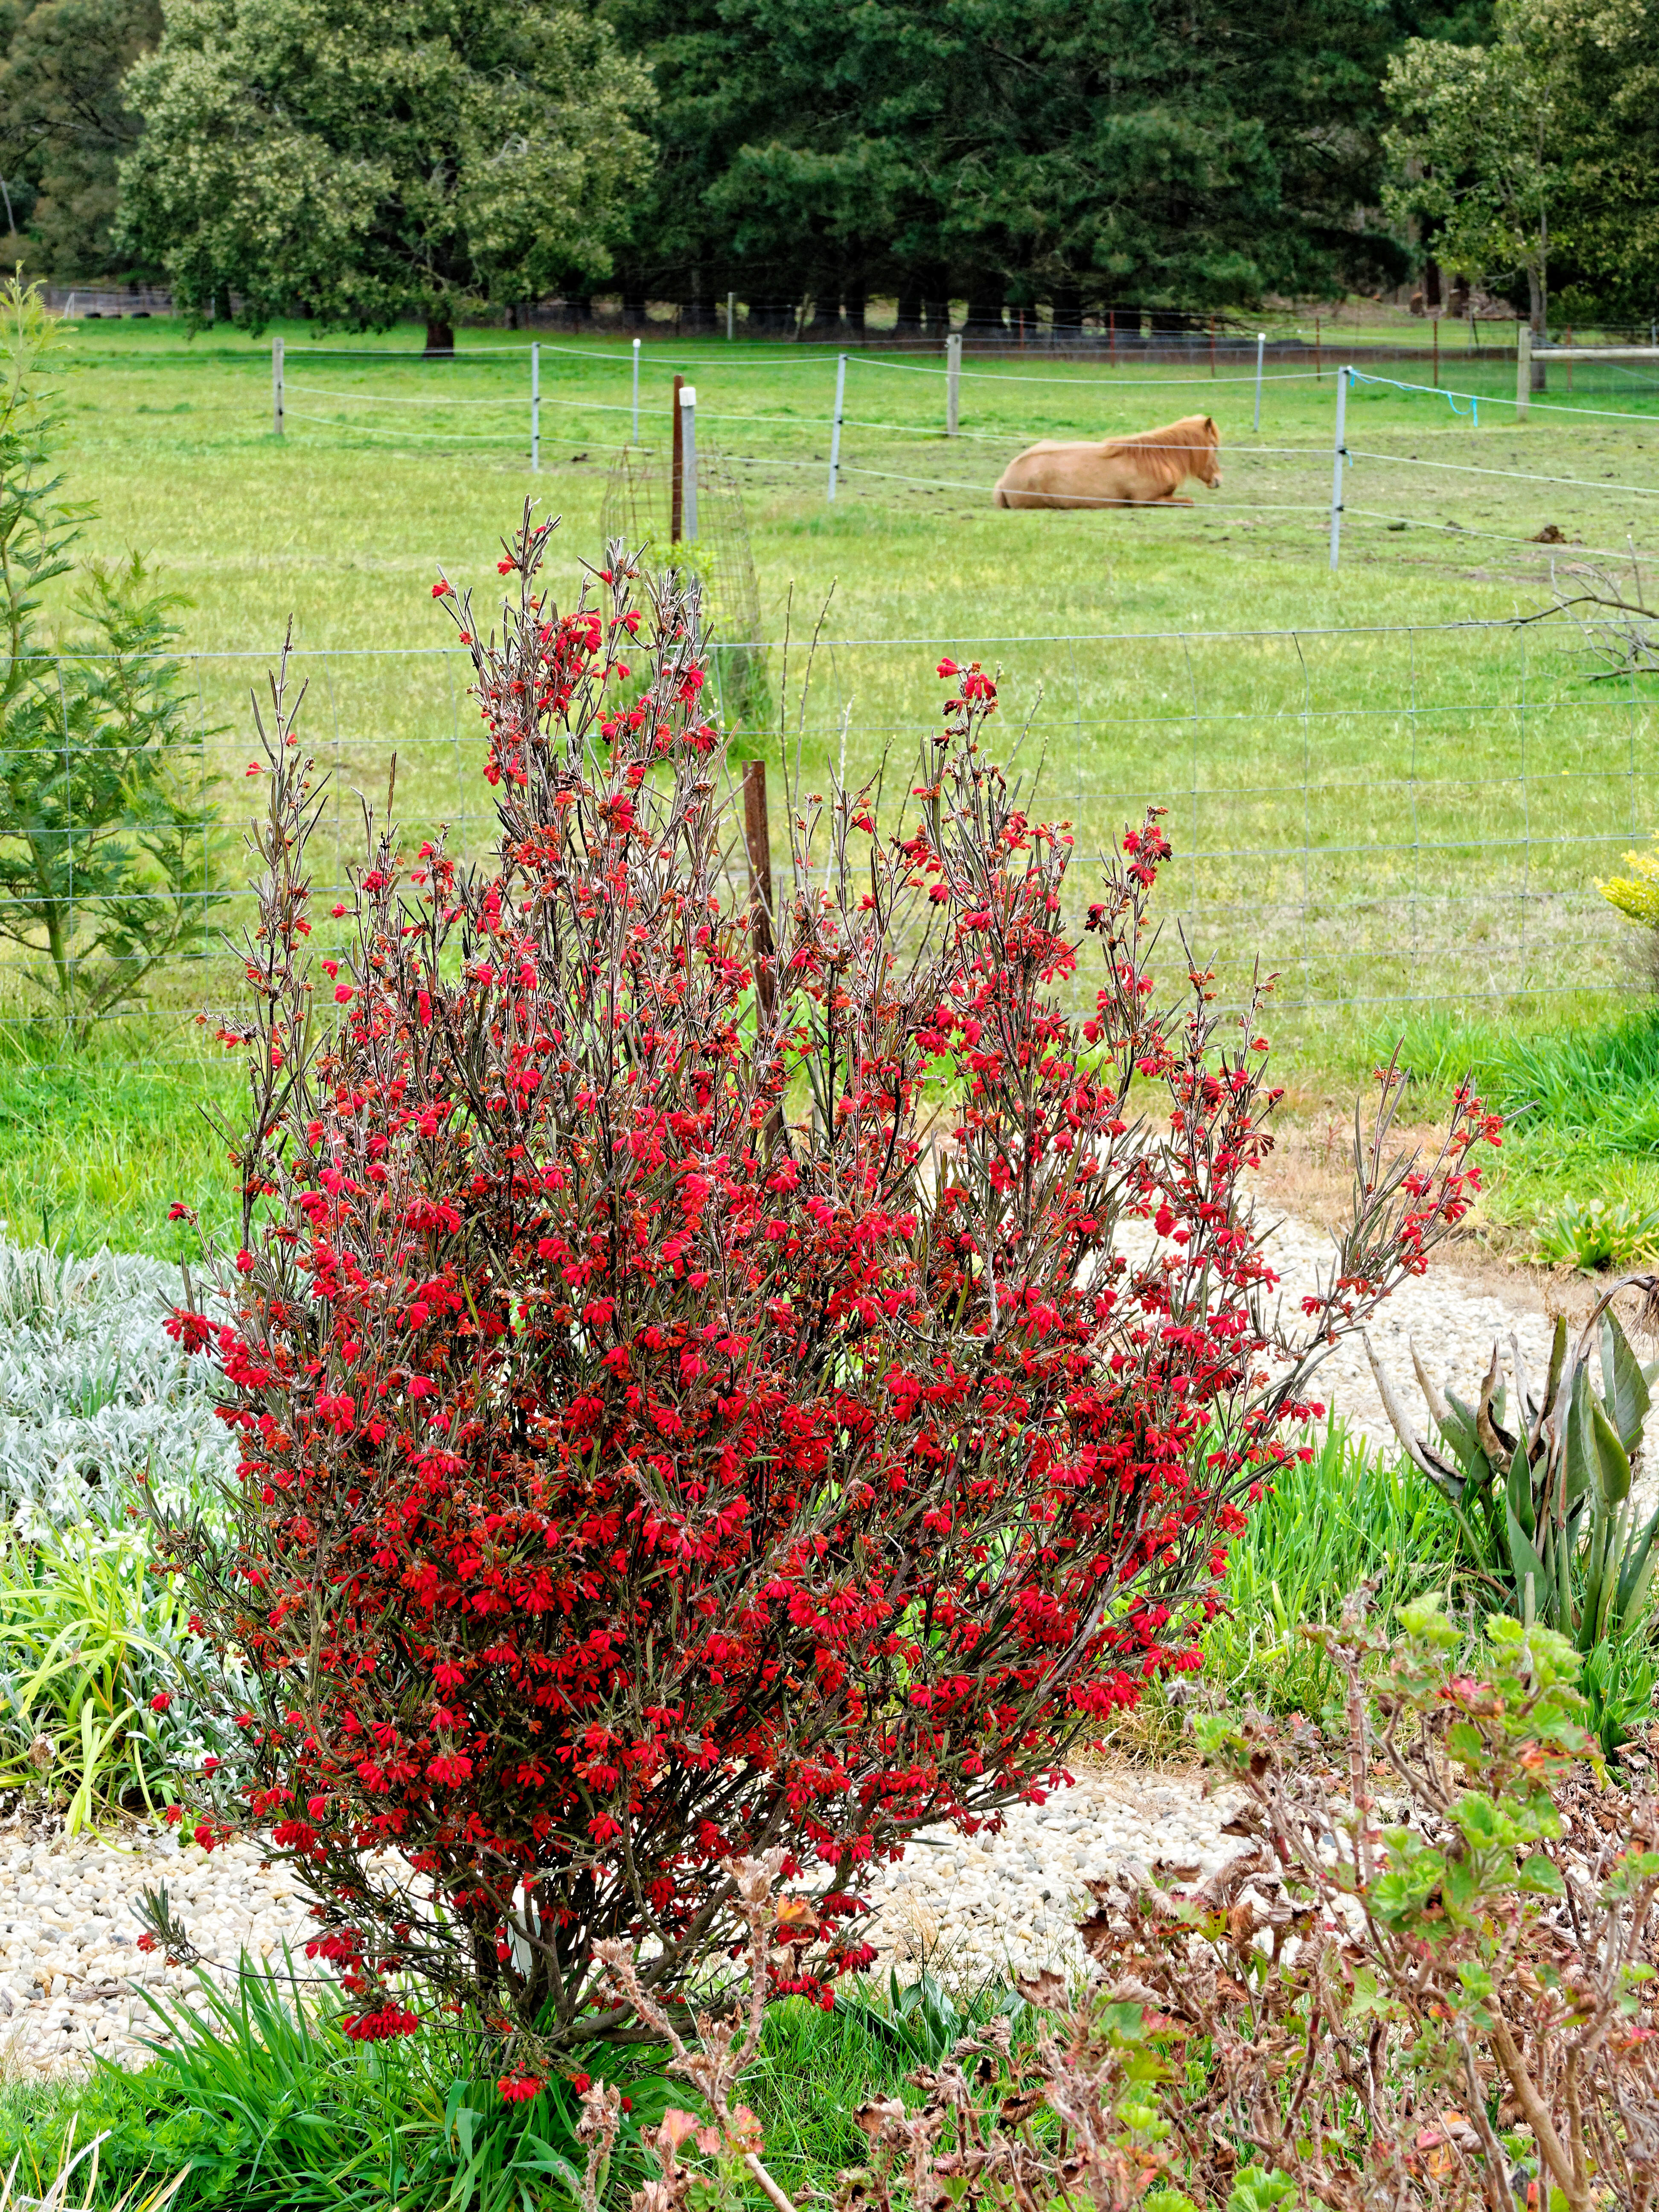 This should be Grevillea-1.jpeg.  Is it missing?